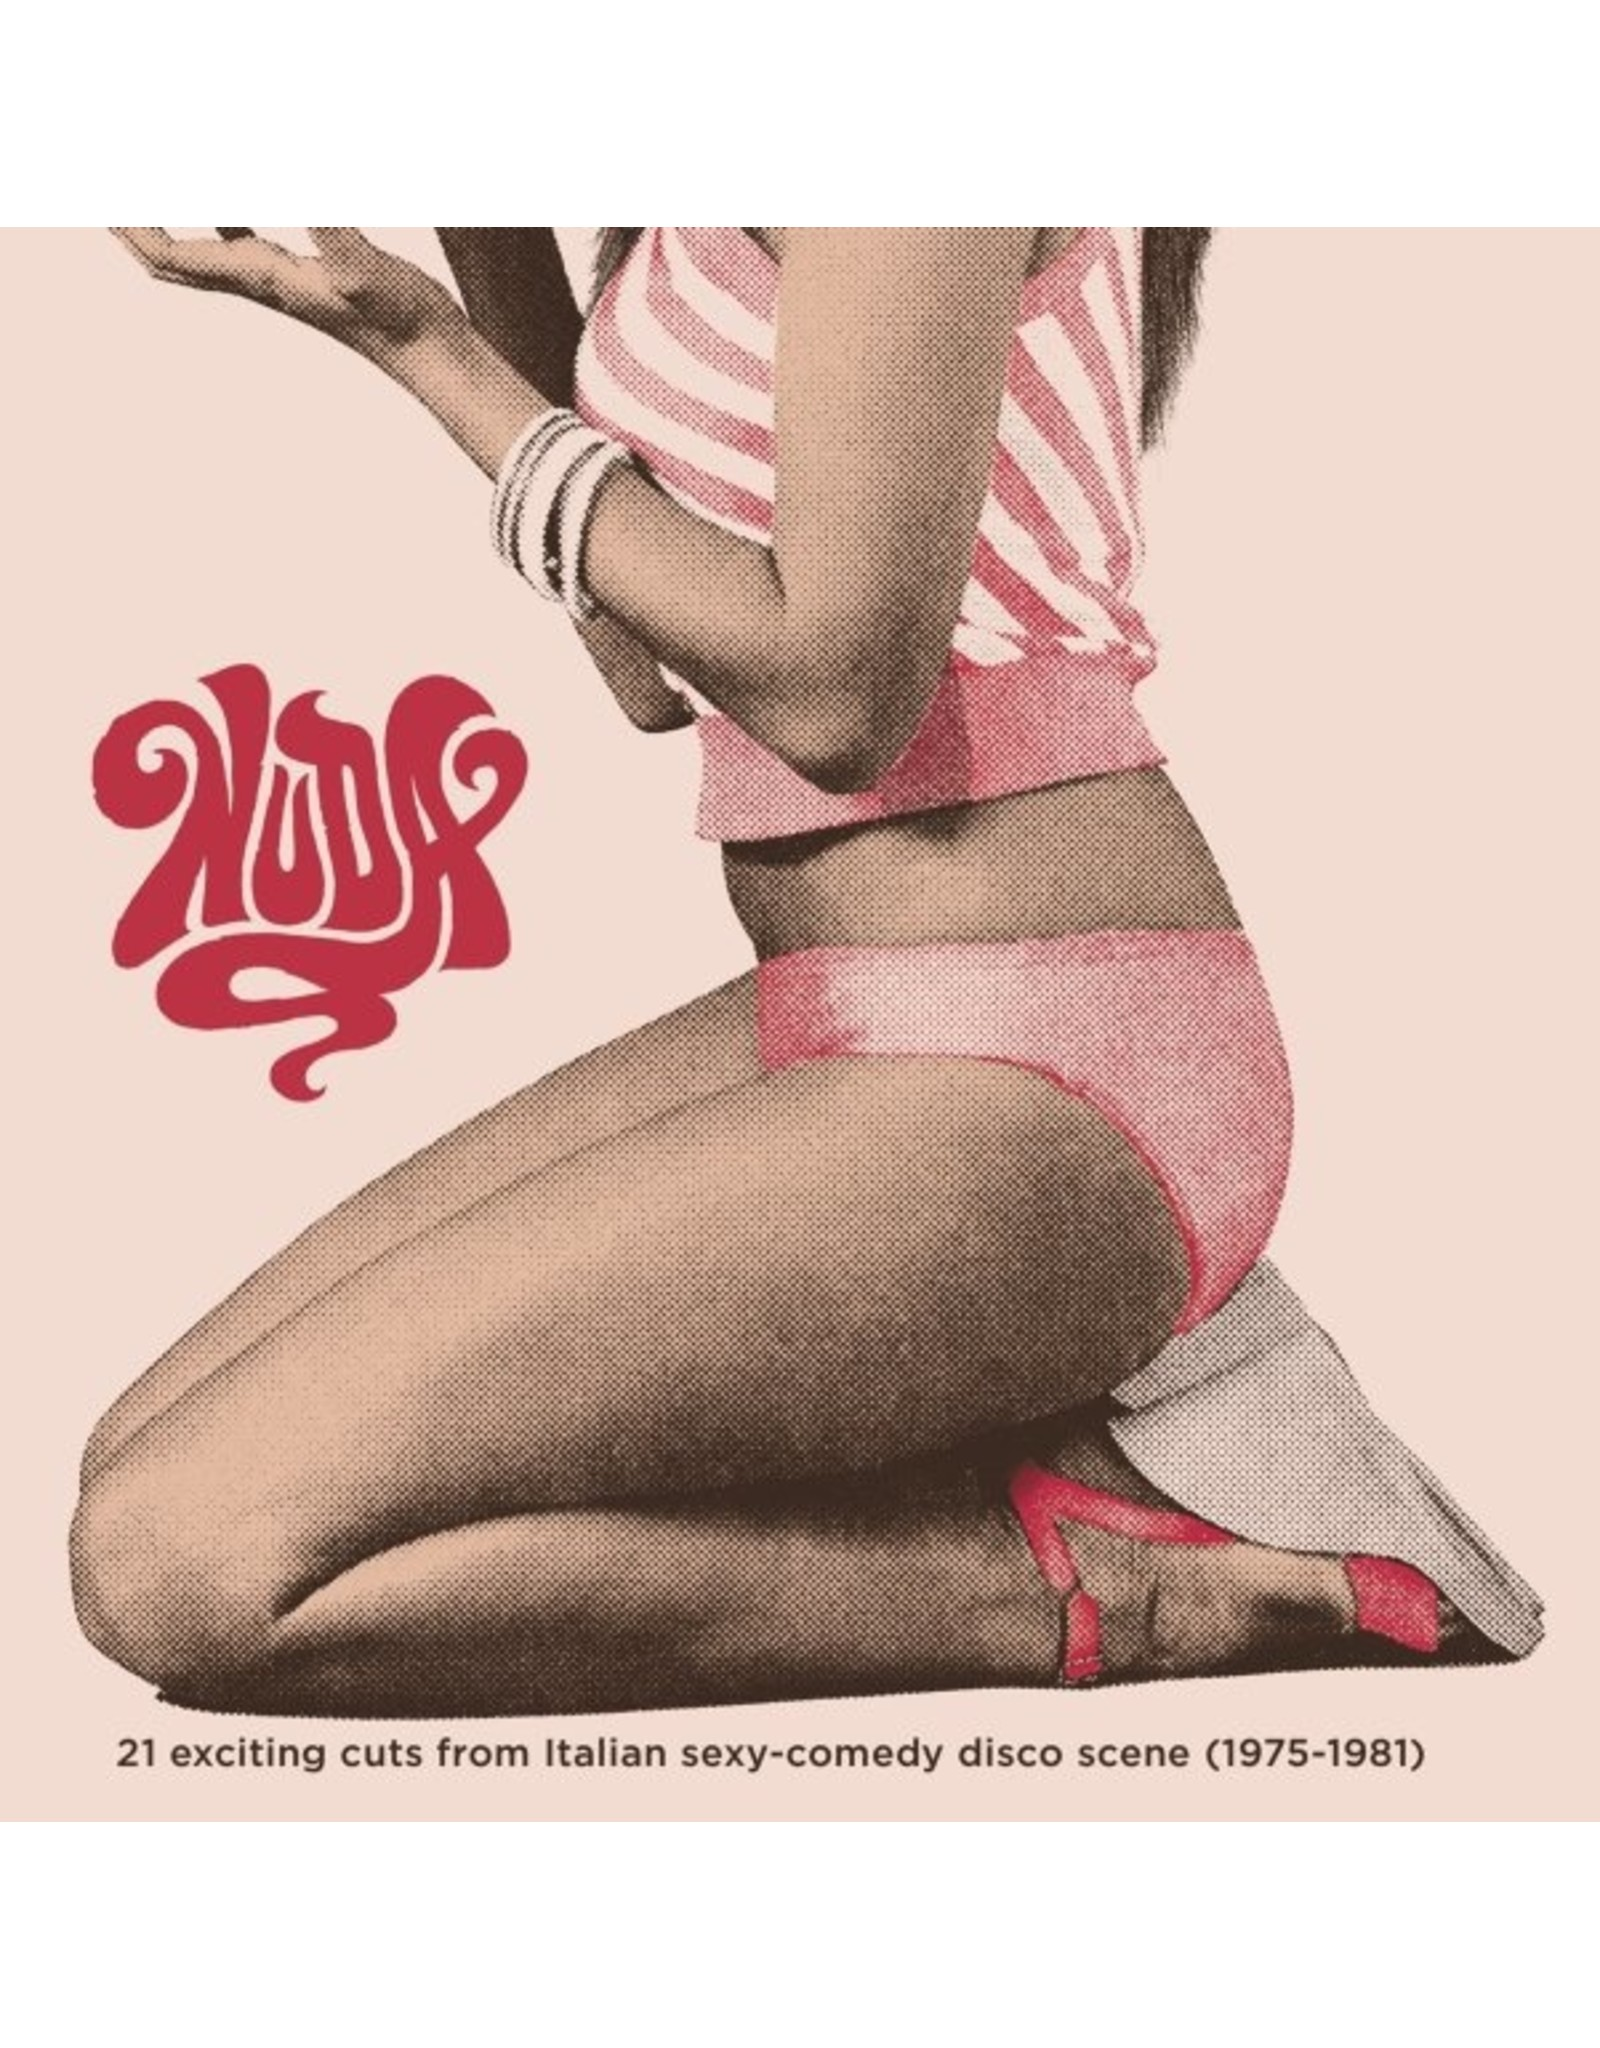 Various - NUDA: 21 Exciting Cuts From Italian Sexy-Comedy Disco Scene (1975-1981) 2LP